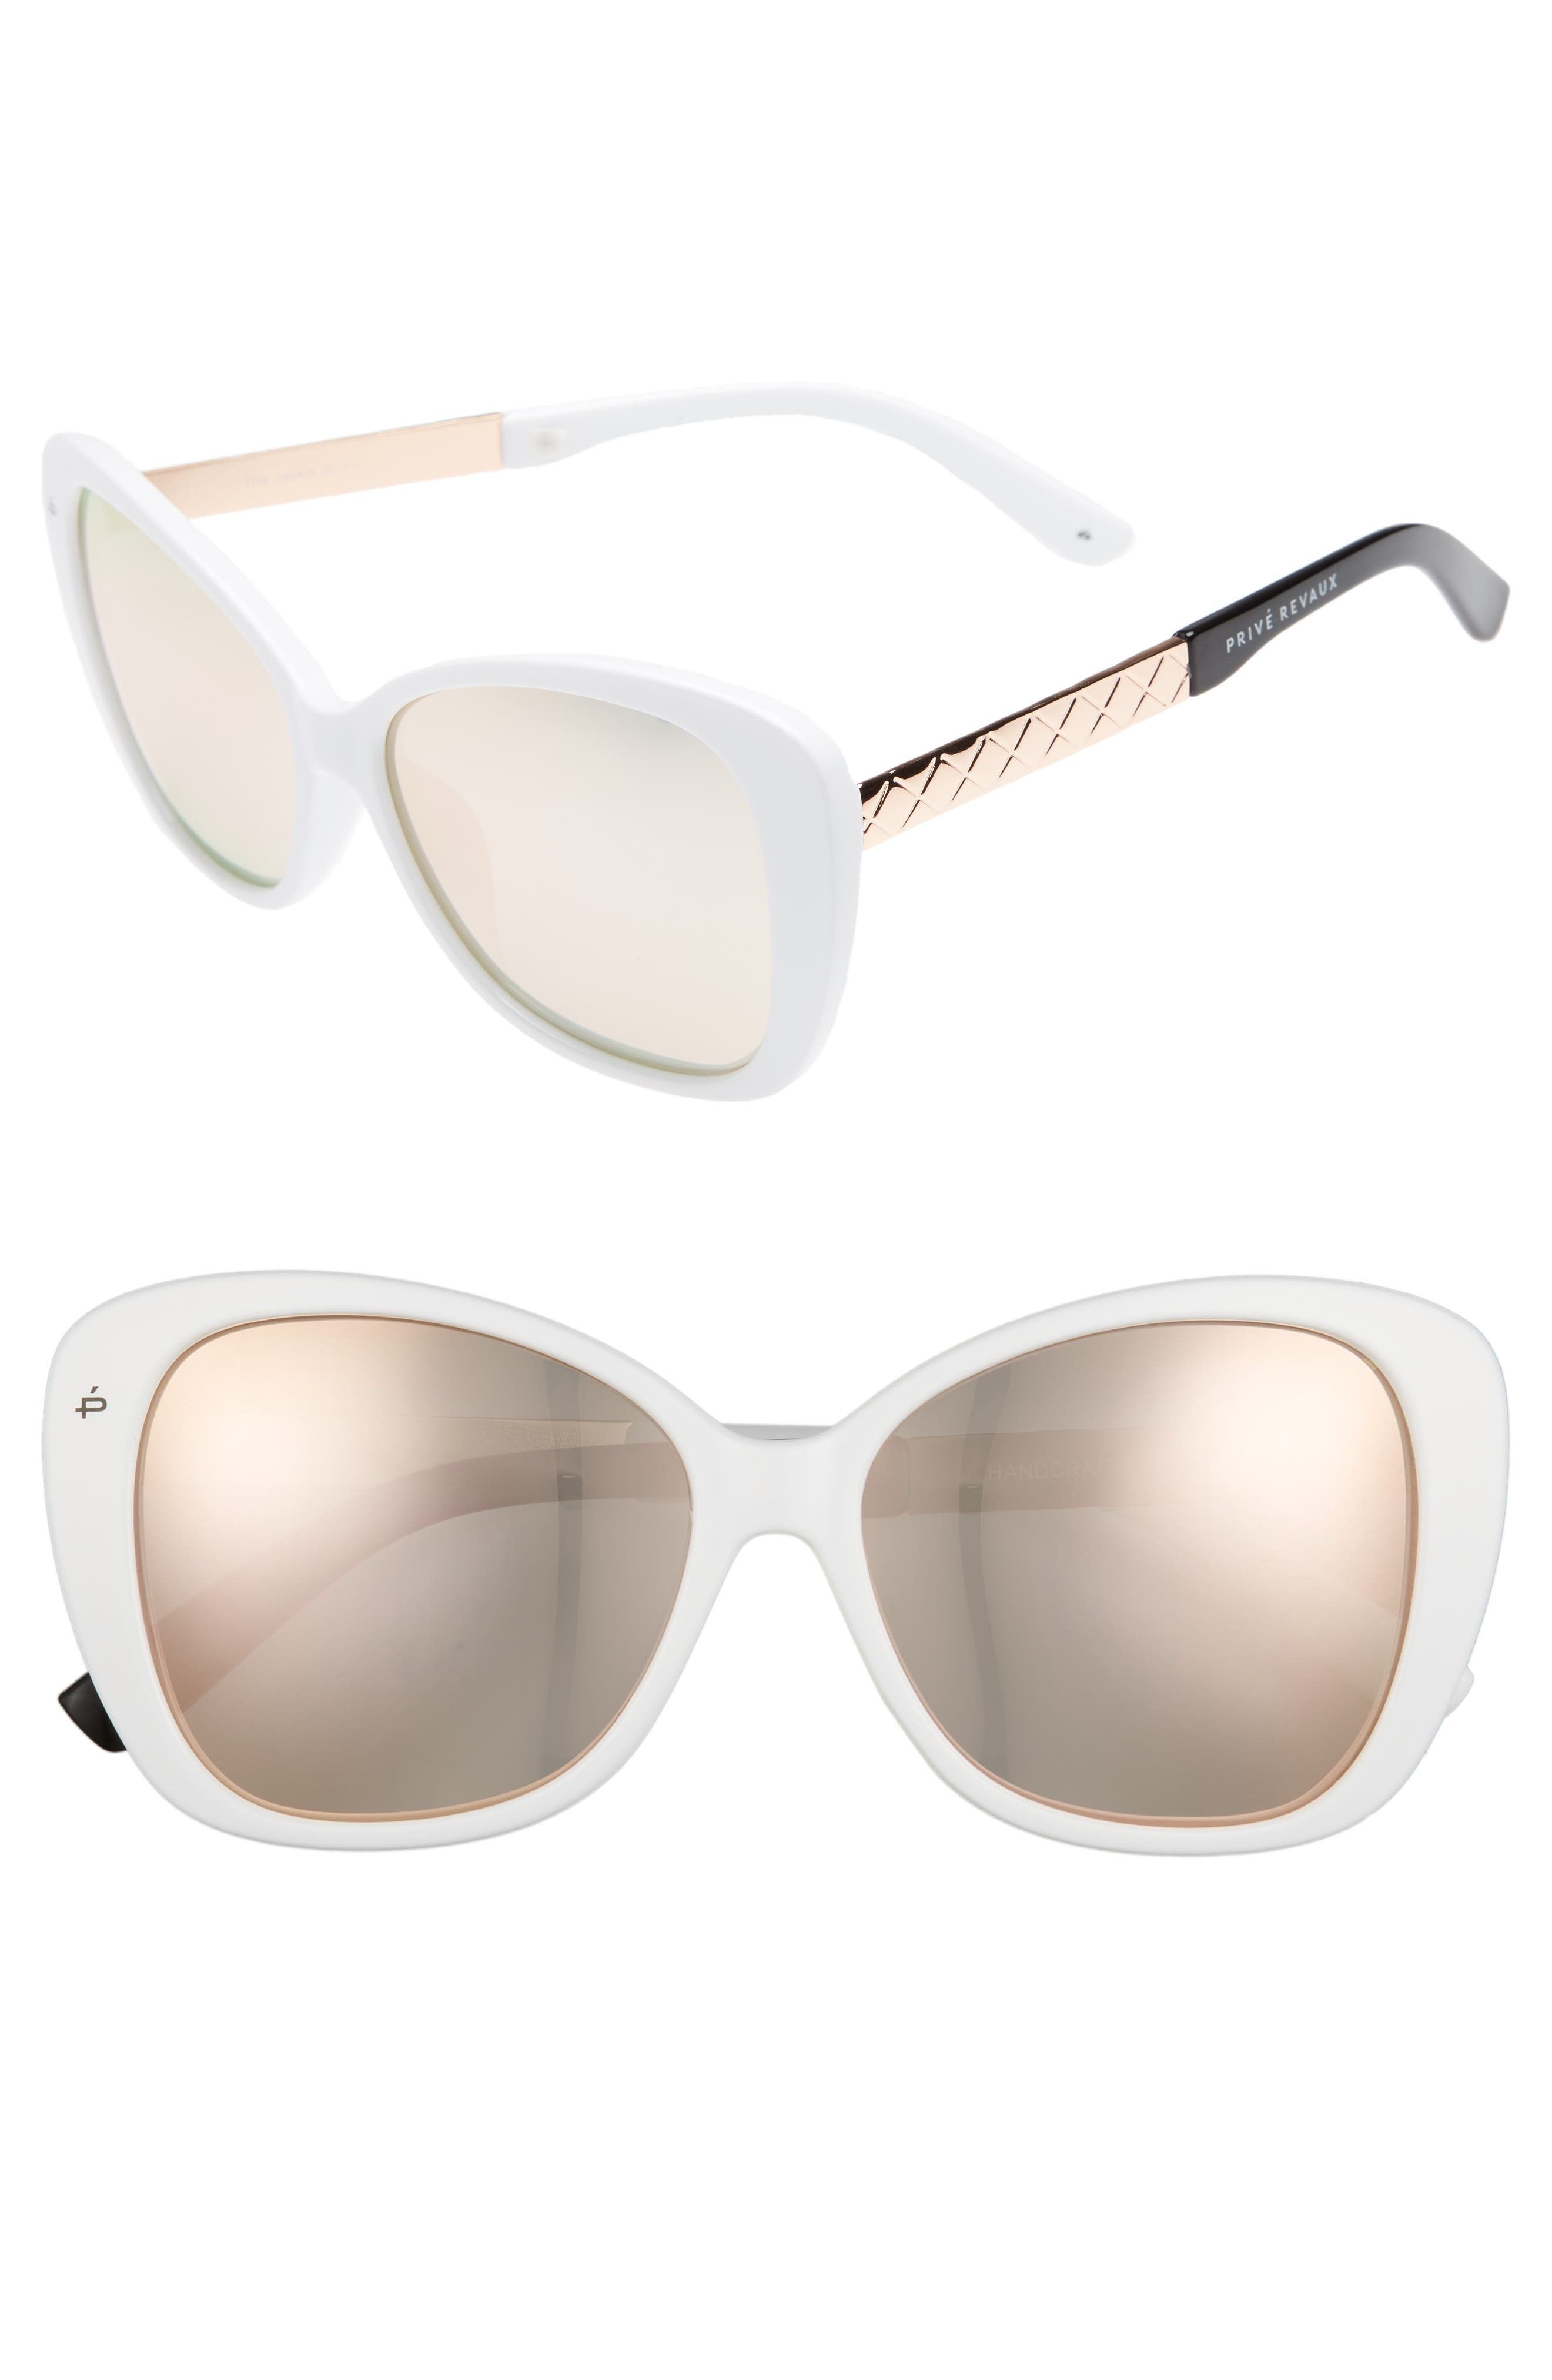 Privé Revaux The Jackie O 56mm Cat Eye Sunglasses,                         Main,                         color, White Polarized